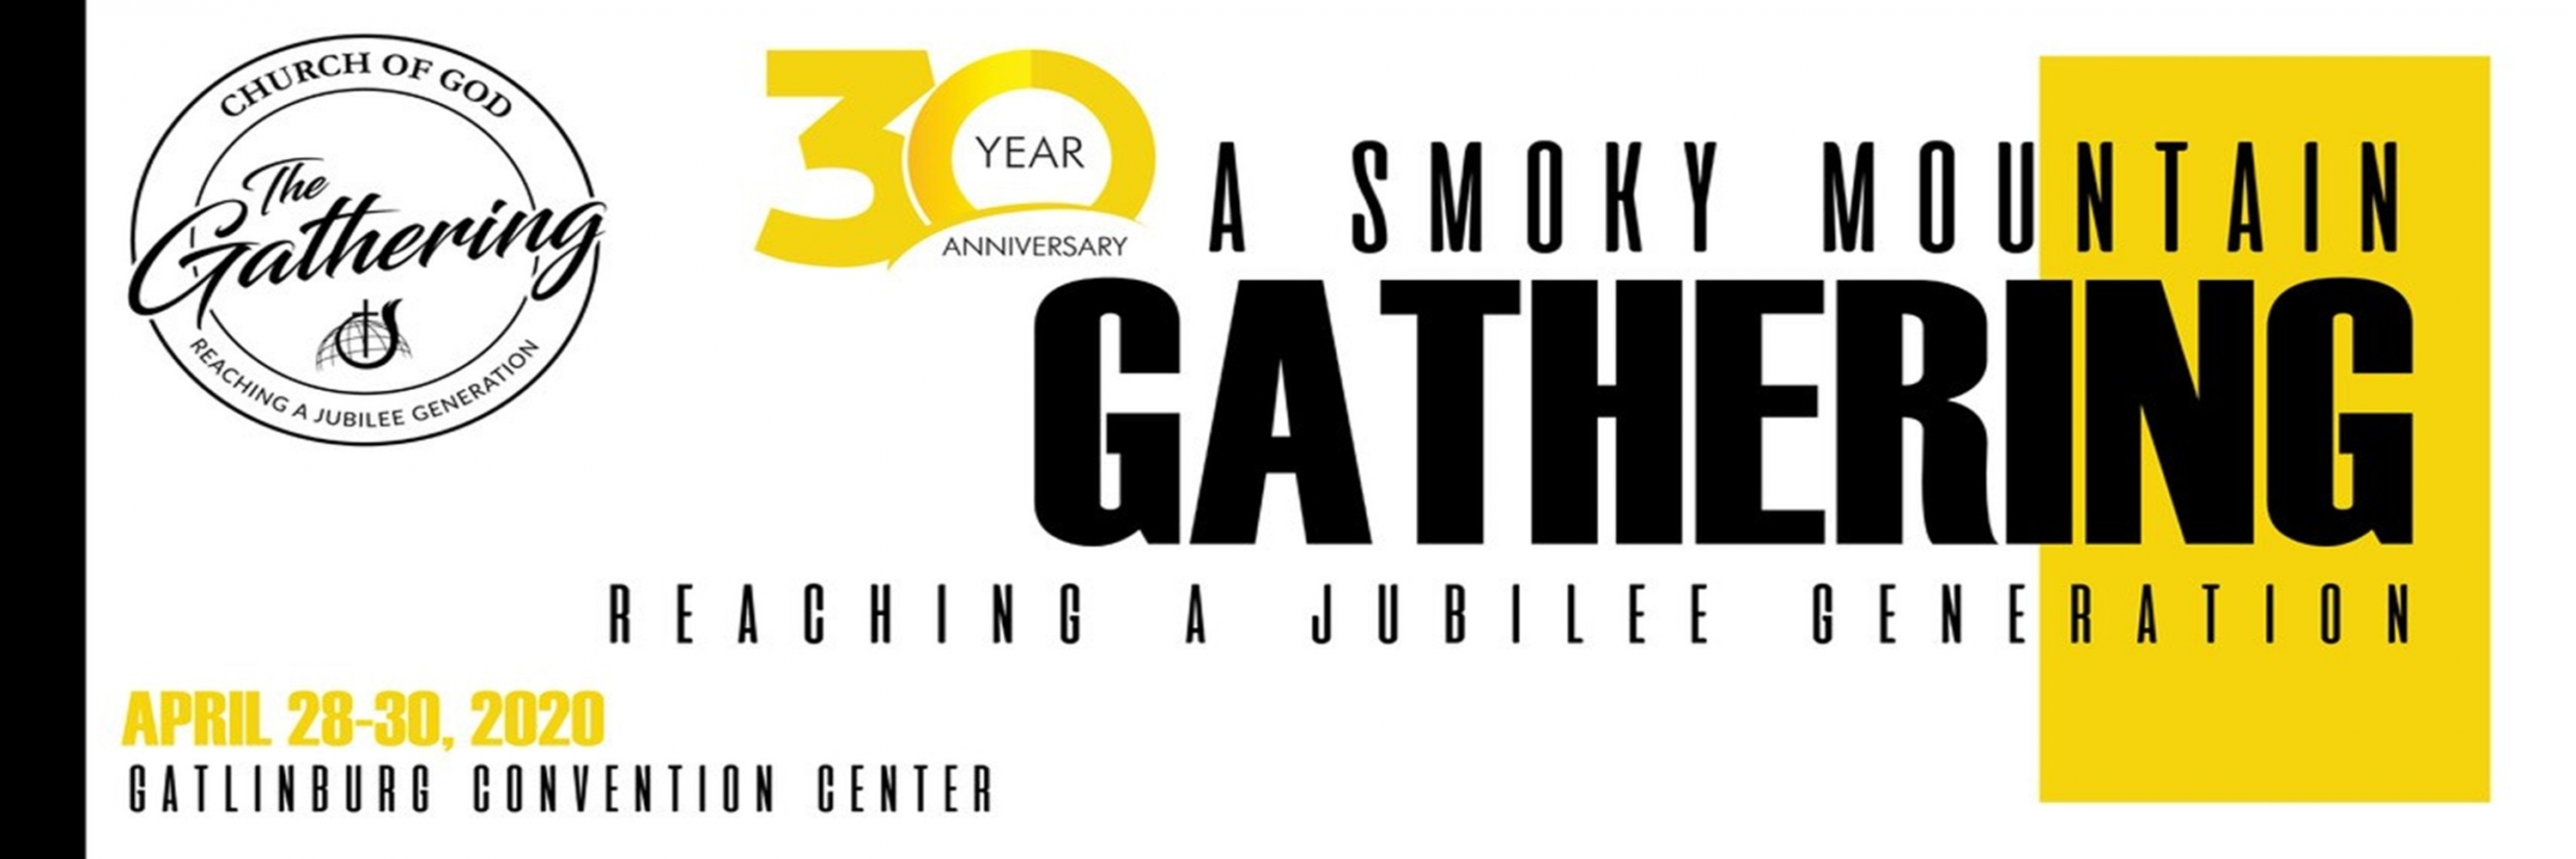 Smoky Mountain Gathering